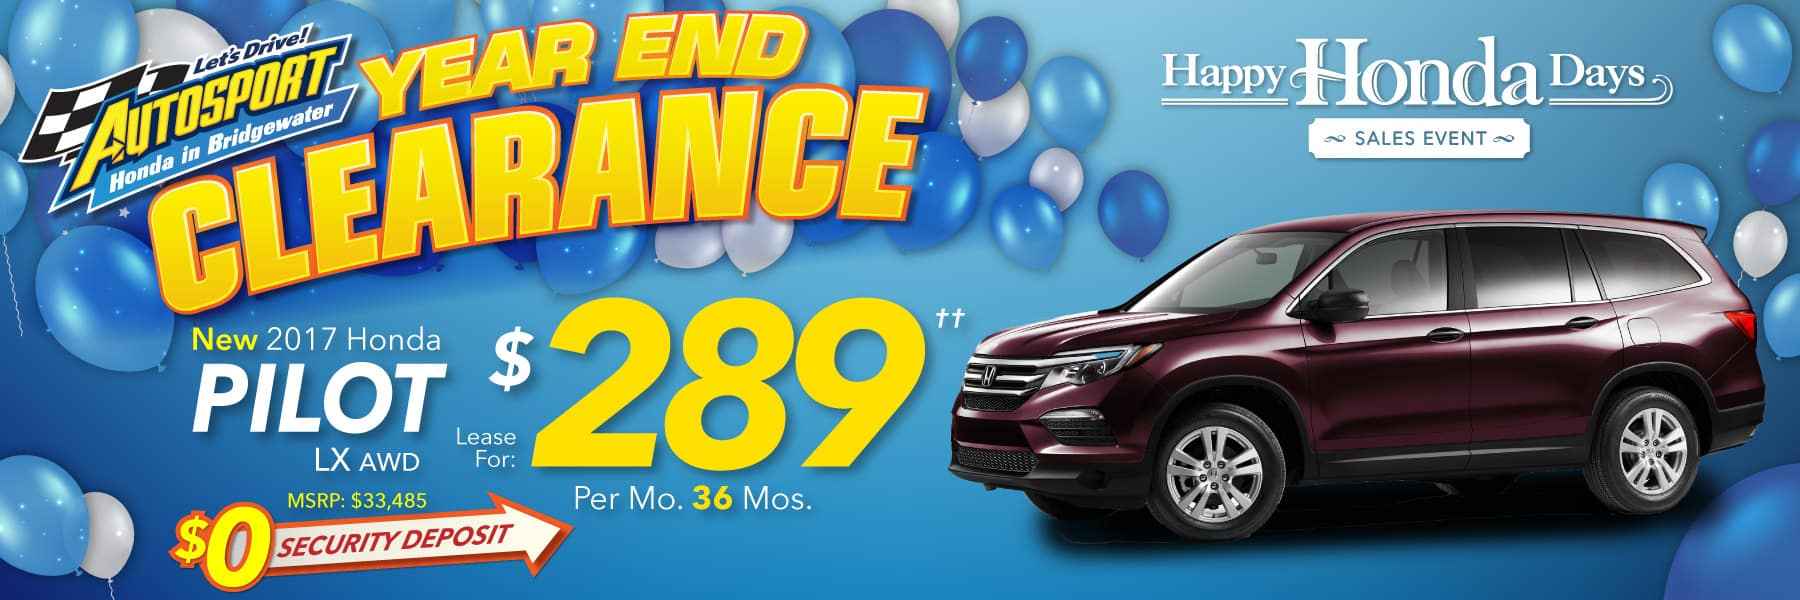 Autosport Honda Service Coupons - weatherlyp.gq CODES Get Deal Autosport Honda Service Coupons - weatherlyp.gq CODES Get Deal Get Deal The expert service technicians at Autosport Honda, your Honda service center serving Plainfield, will keep your Honda running at peak performance for many years. Whether you own a new Honda or your vehicle is a few years old, our .